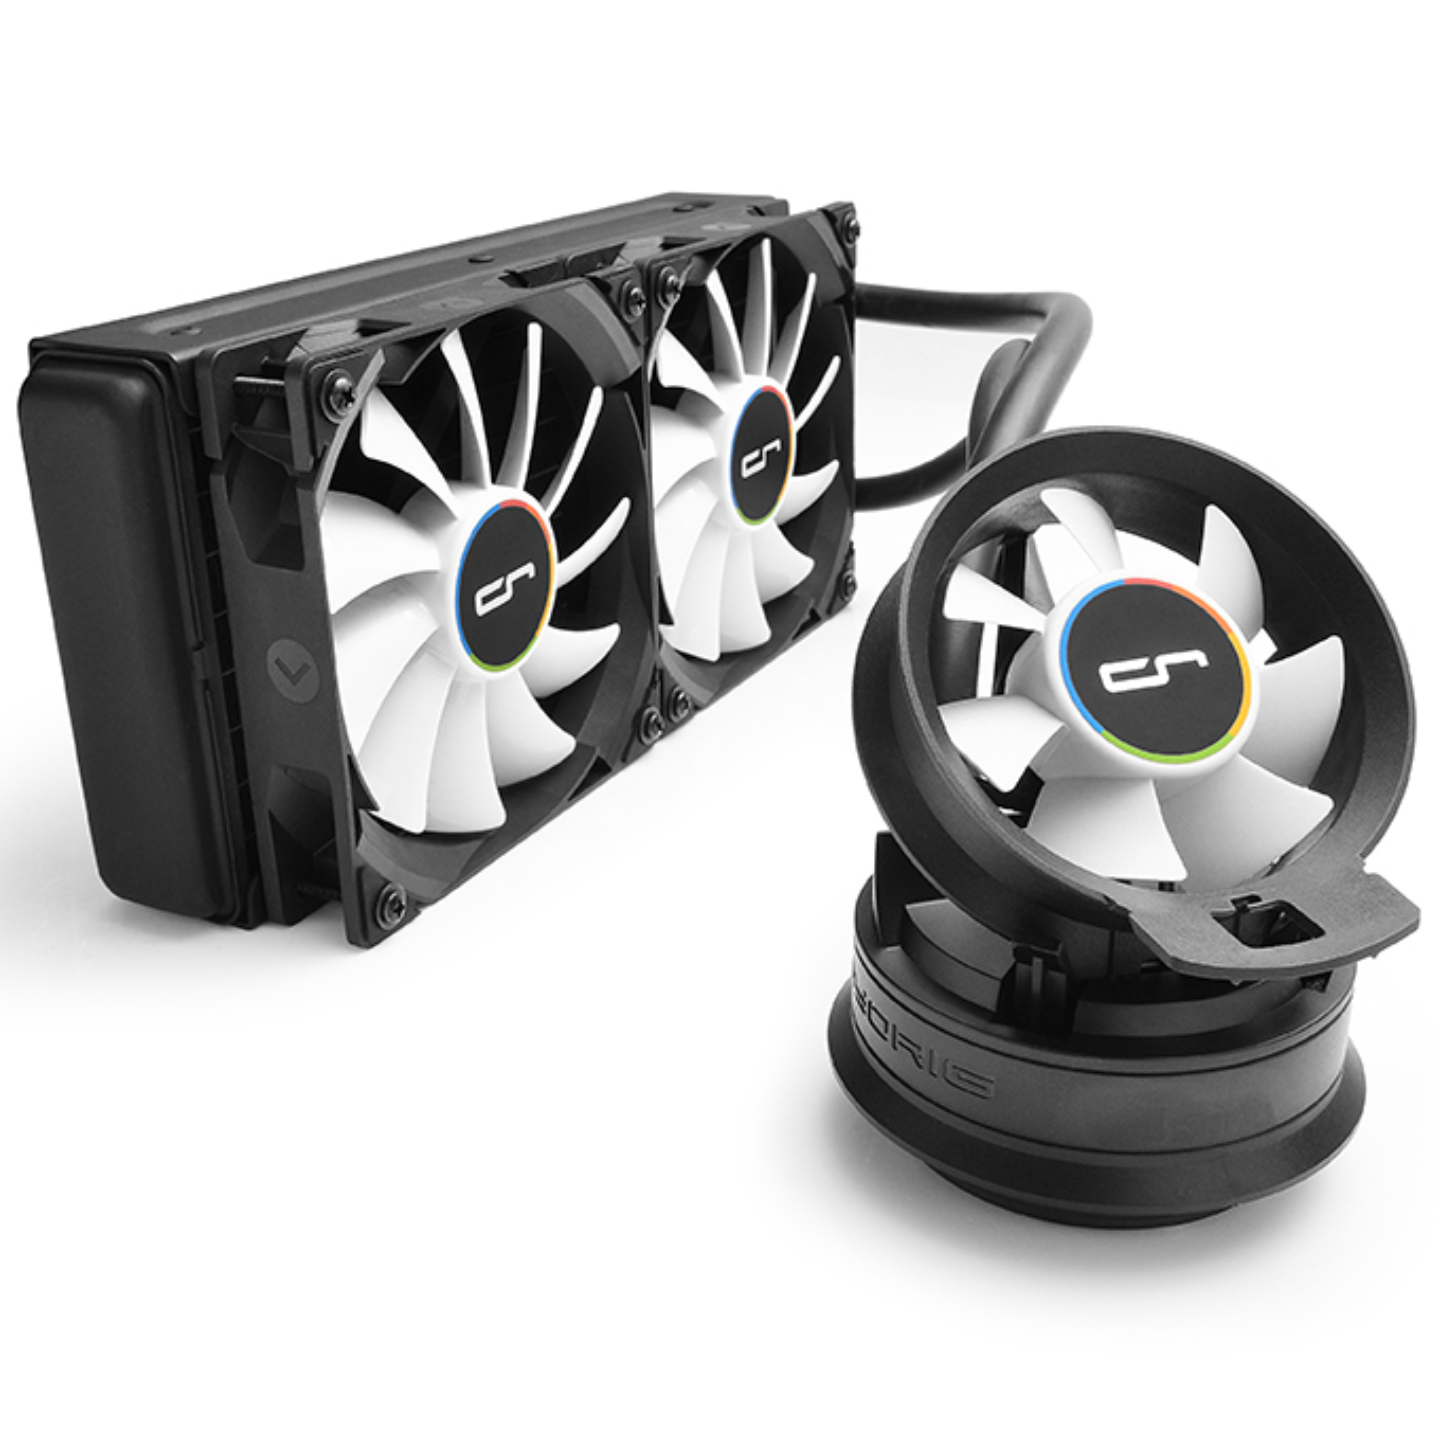 Cryorig A40 Ultimate AIO